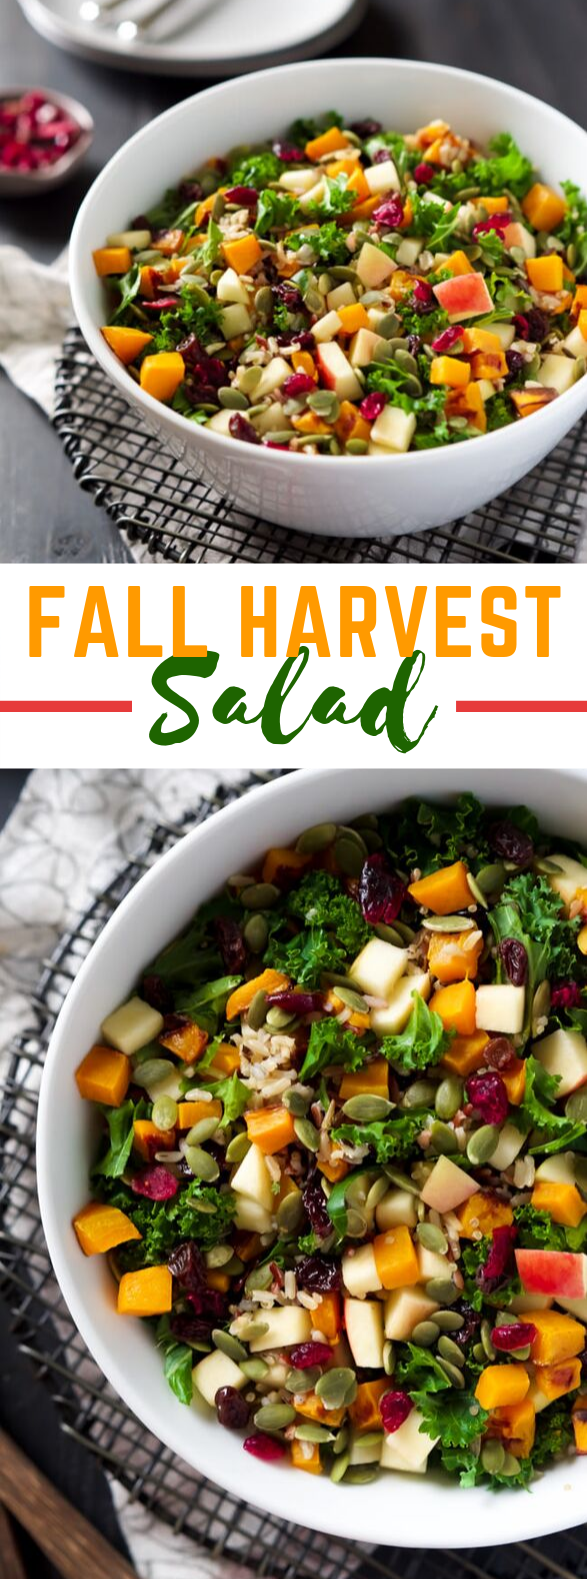 FALL HARVEST SALAD WITH APPLE CIDER VINAIGRETTE #vegetarian #healthy